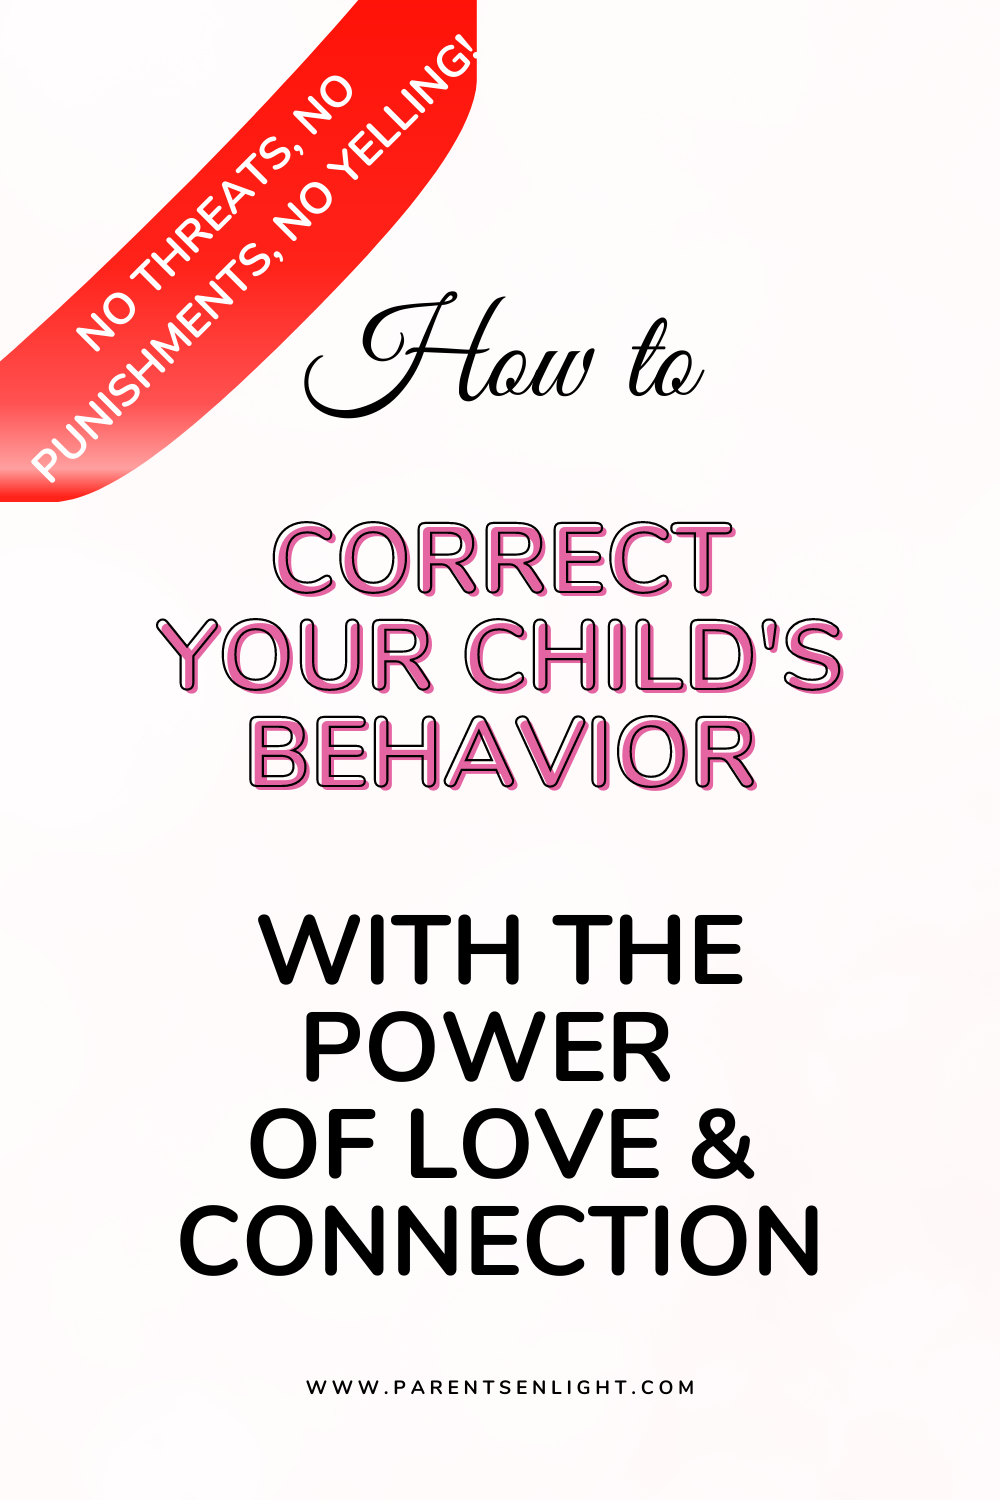 More often than not, our attempts to correct our children's behavior result of more of the same behavior. This is why it's happening, and what to do instead! #positiveparenting #terribletwos #positiveparentingsolutiuons #positiveparentinghelp #peacefulparenting #nvc #mindfulparenting #mindfulness